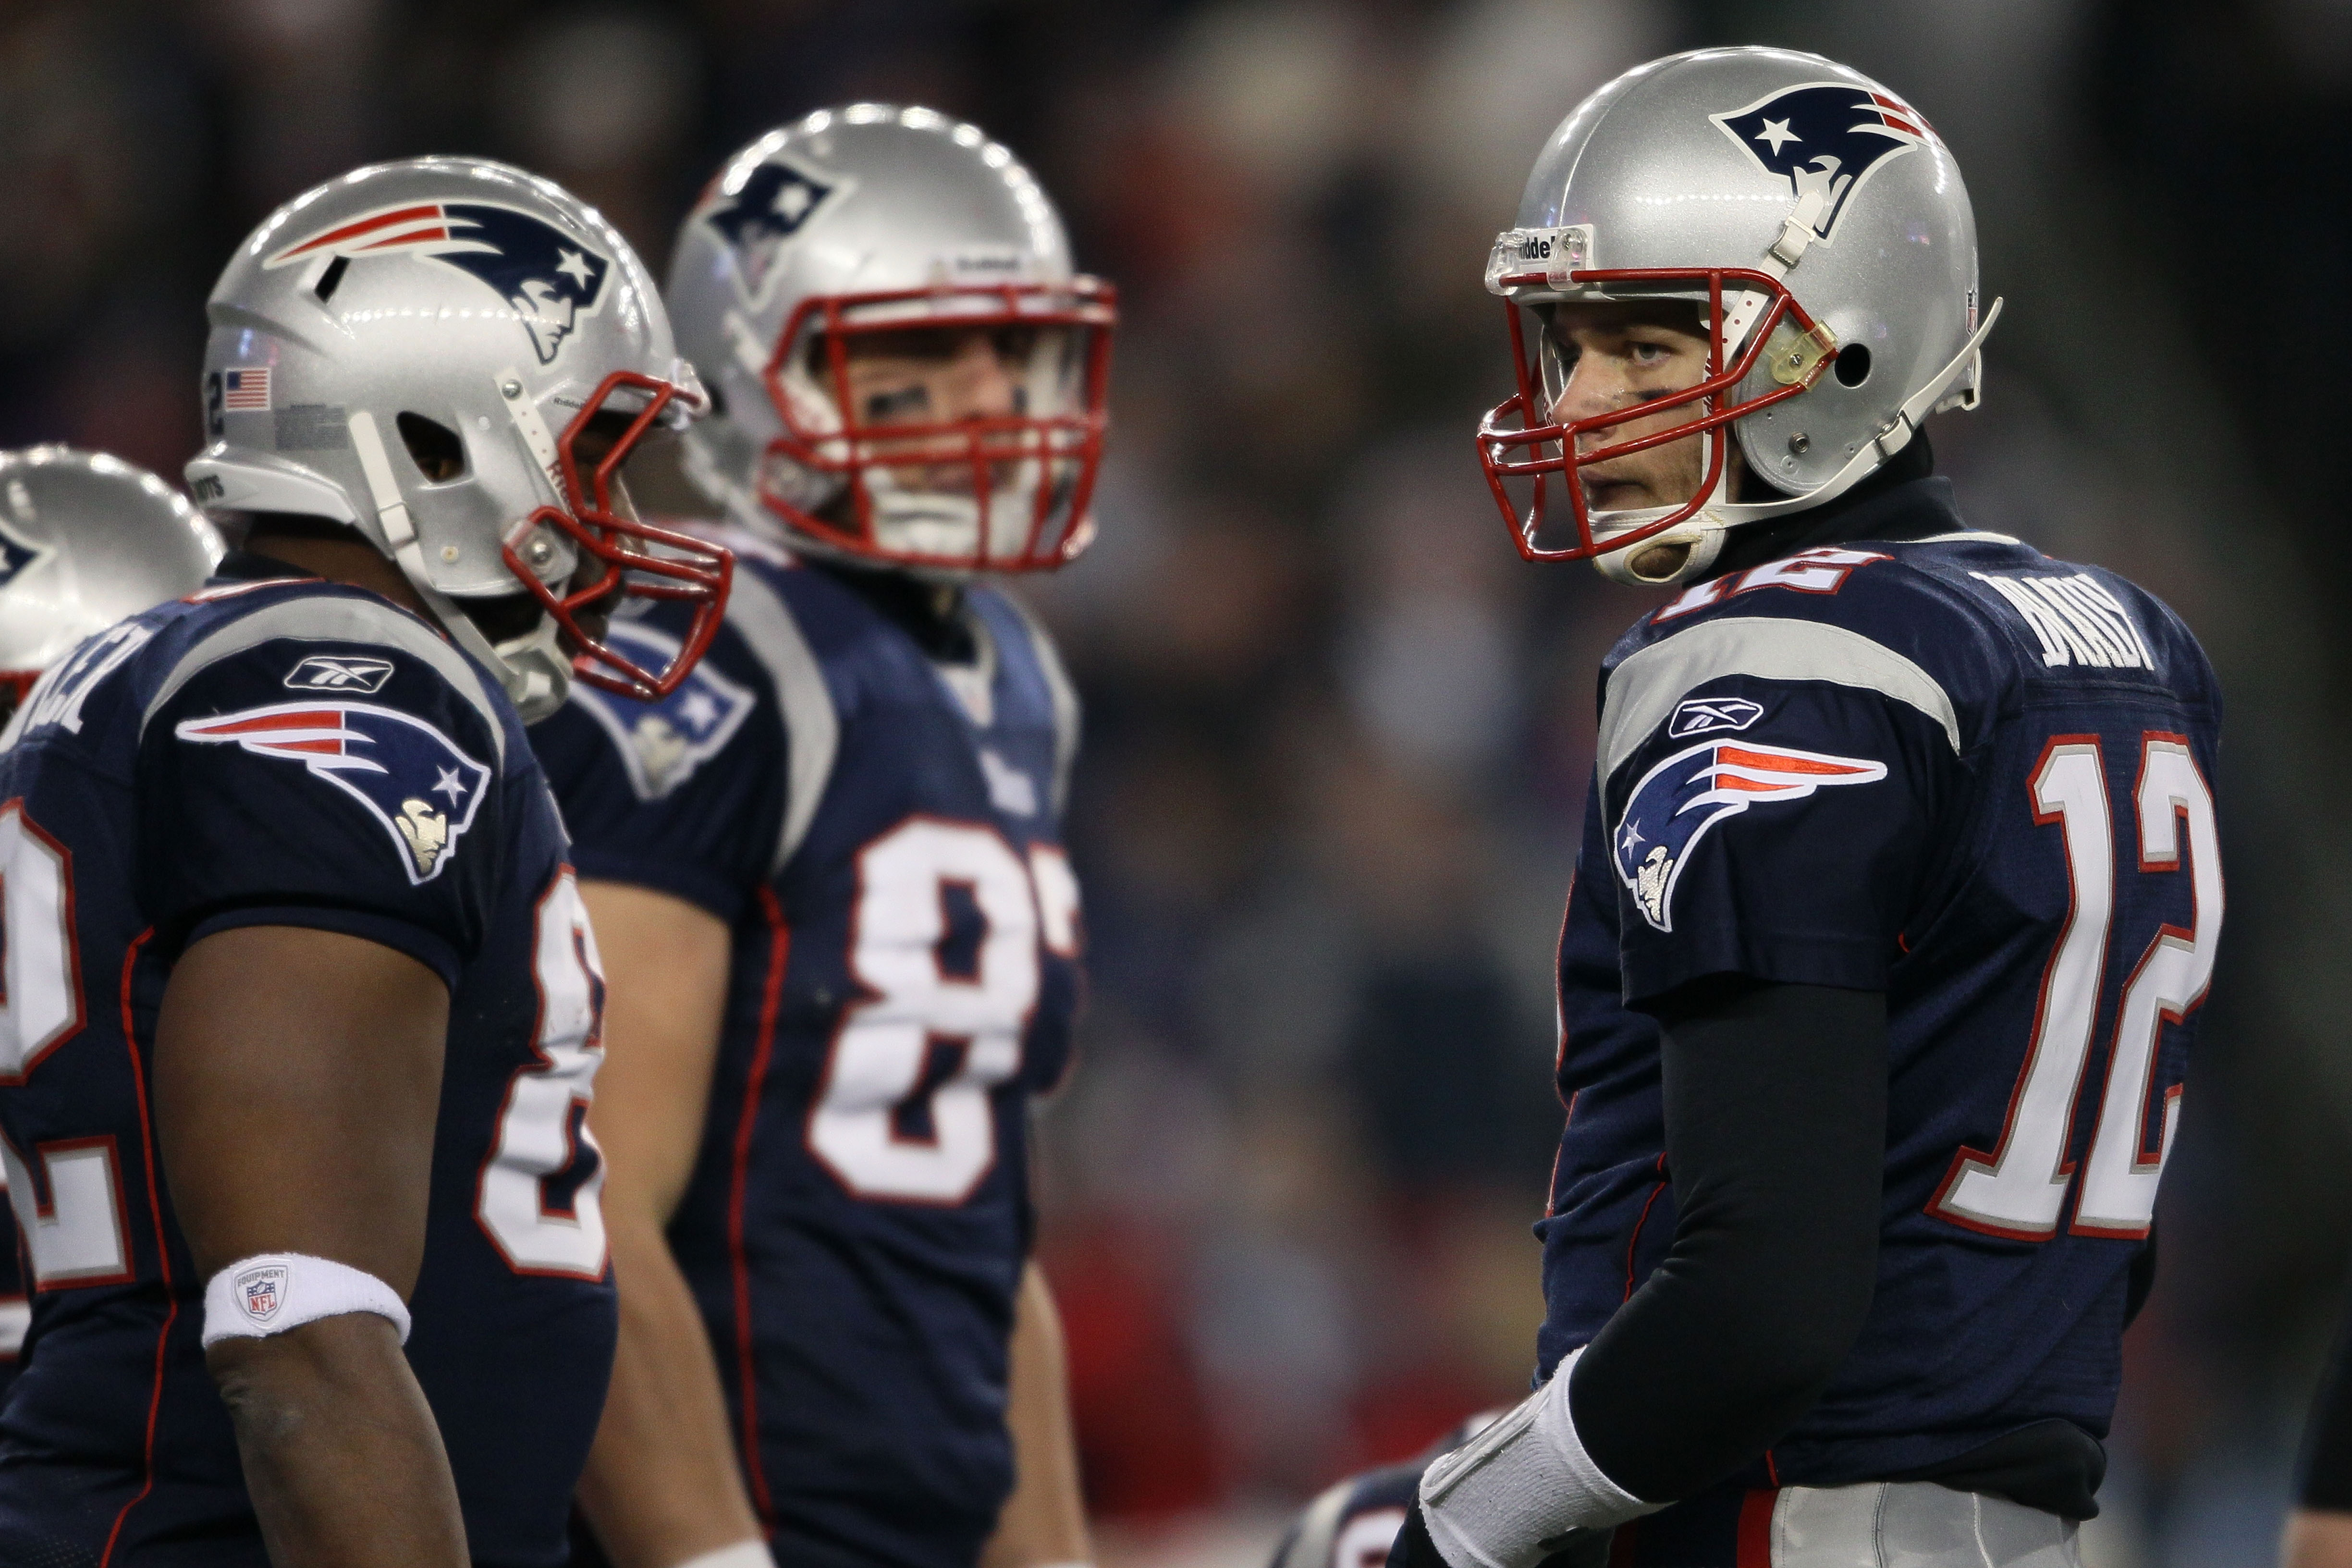 FOXBORO, MA - JANUARY 16:  Quarterback Tom Brady #12 of the New England Patriots stands on the field during their 2011 AFC divisional playoff game against the New York Jets at Gillette Stadium on January 16, 2011 in Foxboro, Massachusetts.  (Photo by Elsa